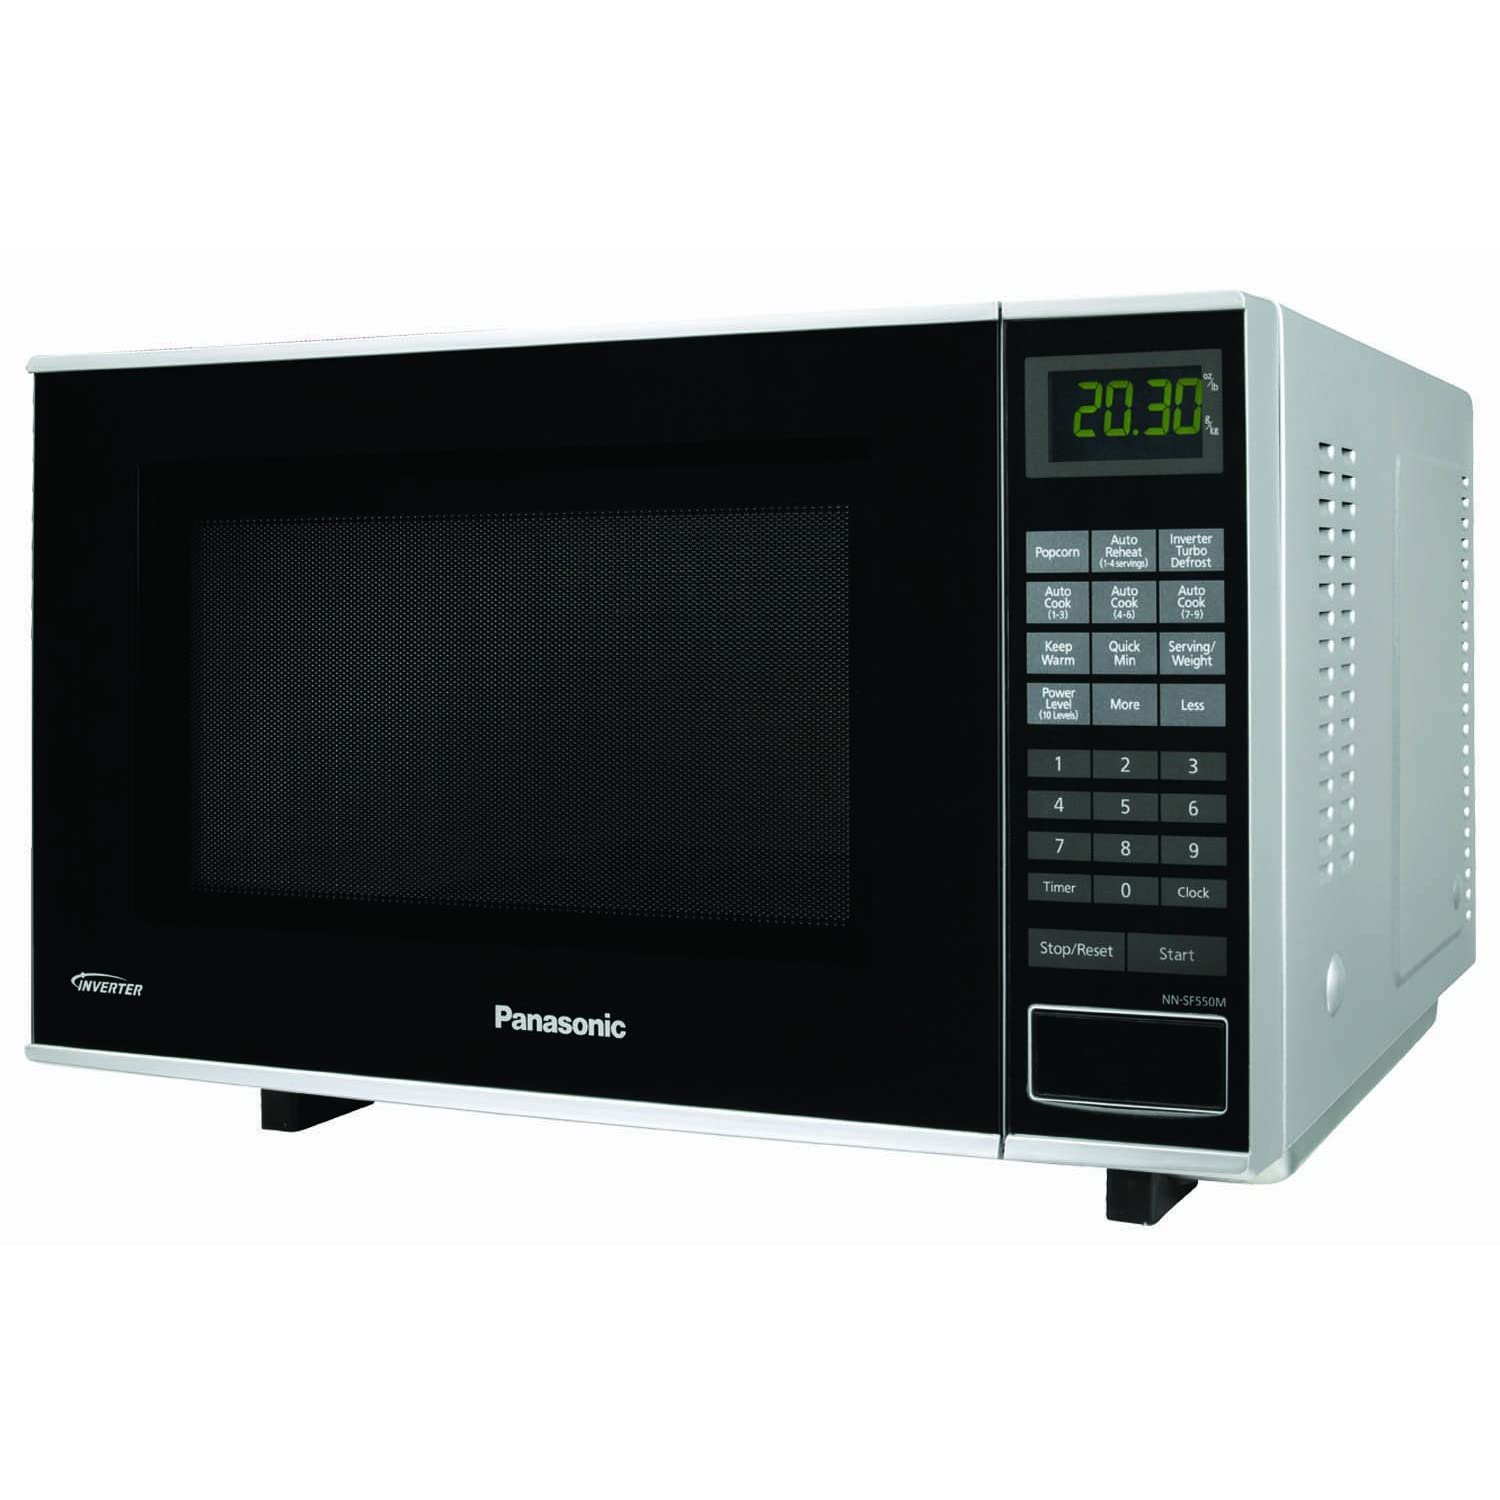 Panasonic NN-SF550M New Flat 1000-Watt 1-Cubic-Foot Microwave Oven